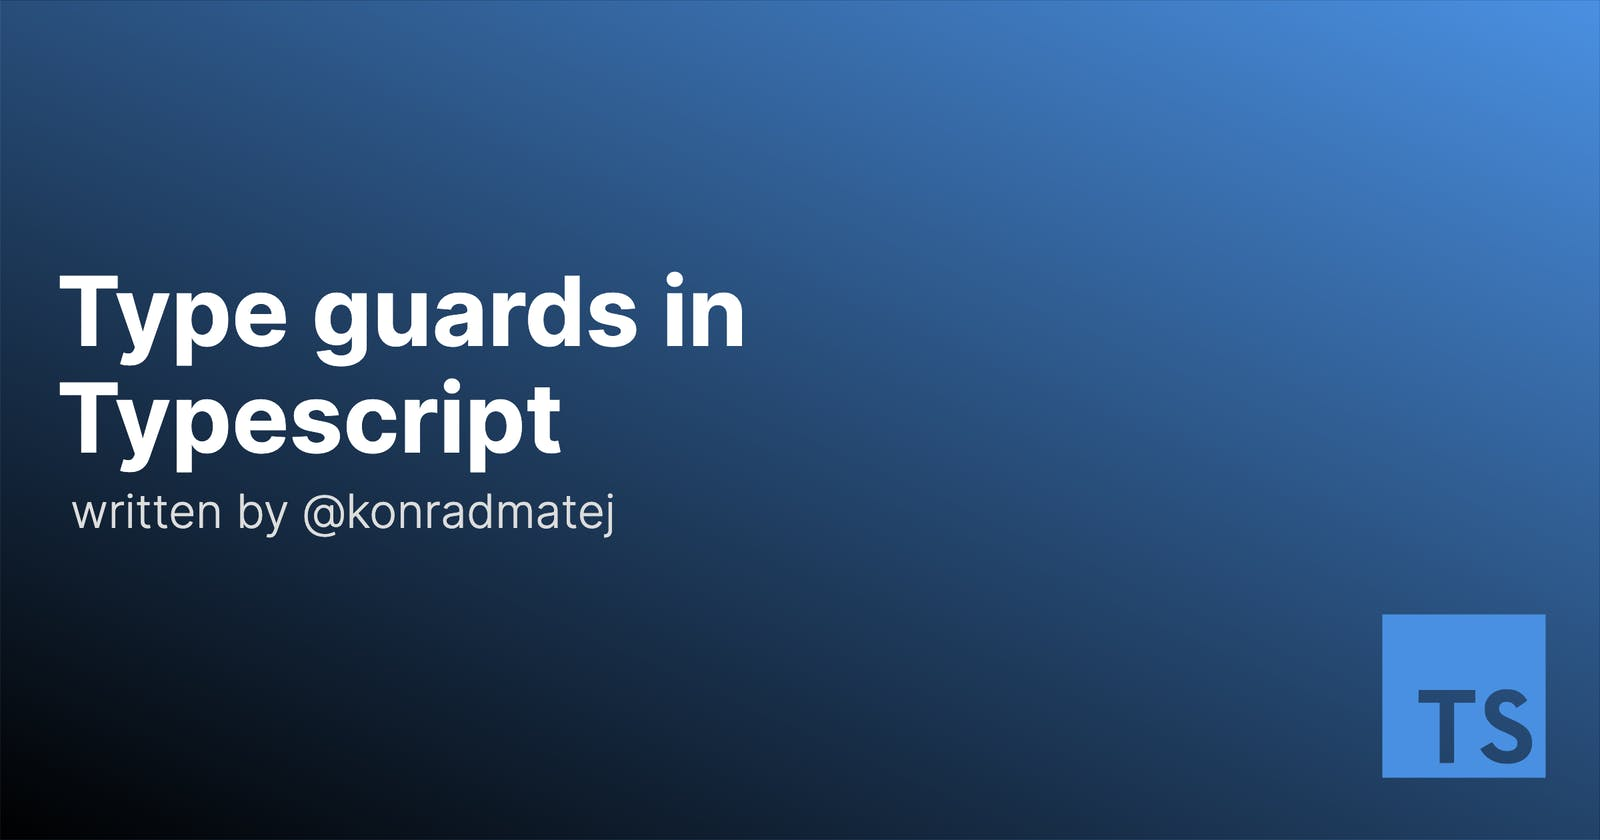 How to use Type guards in Typescript